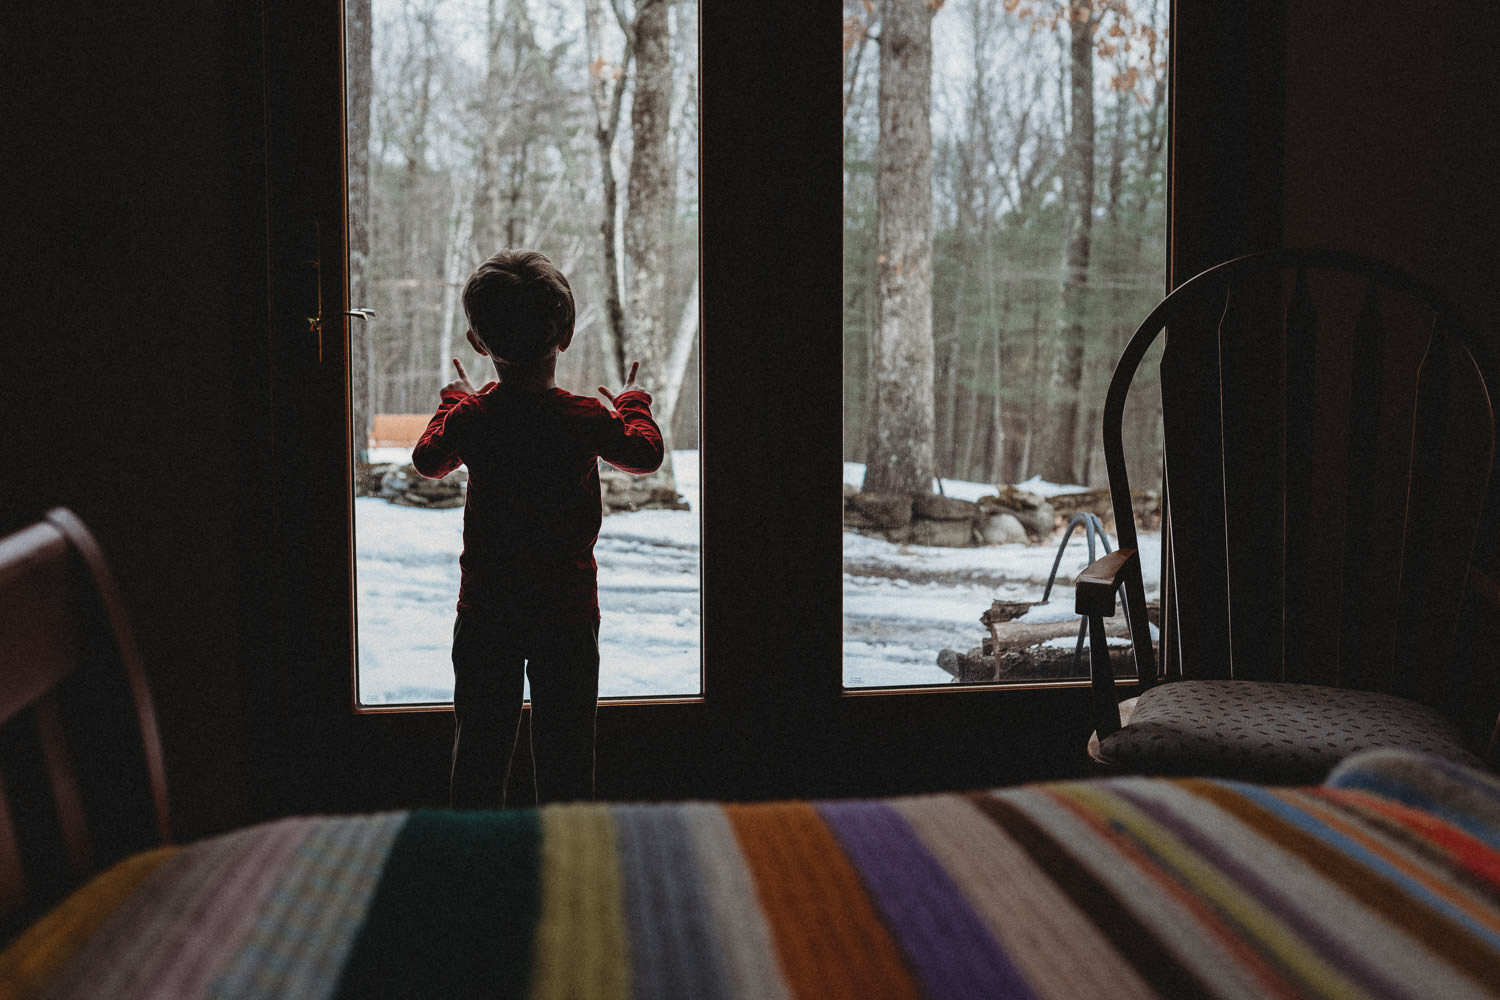 A little boy looks out a sliding door to a snowy scene.